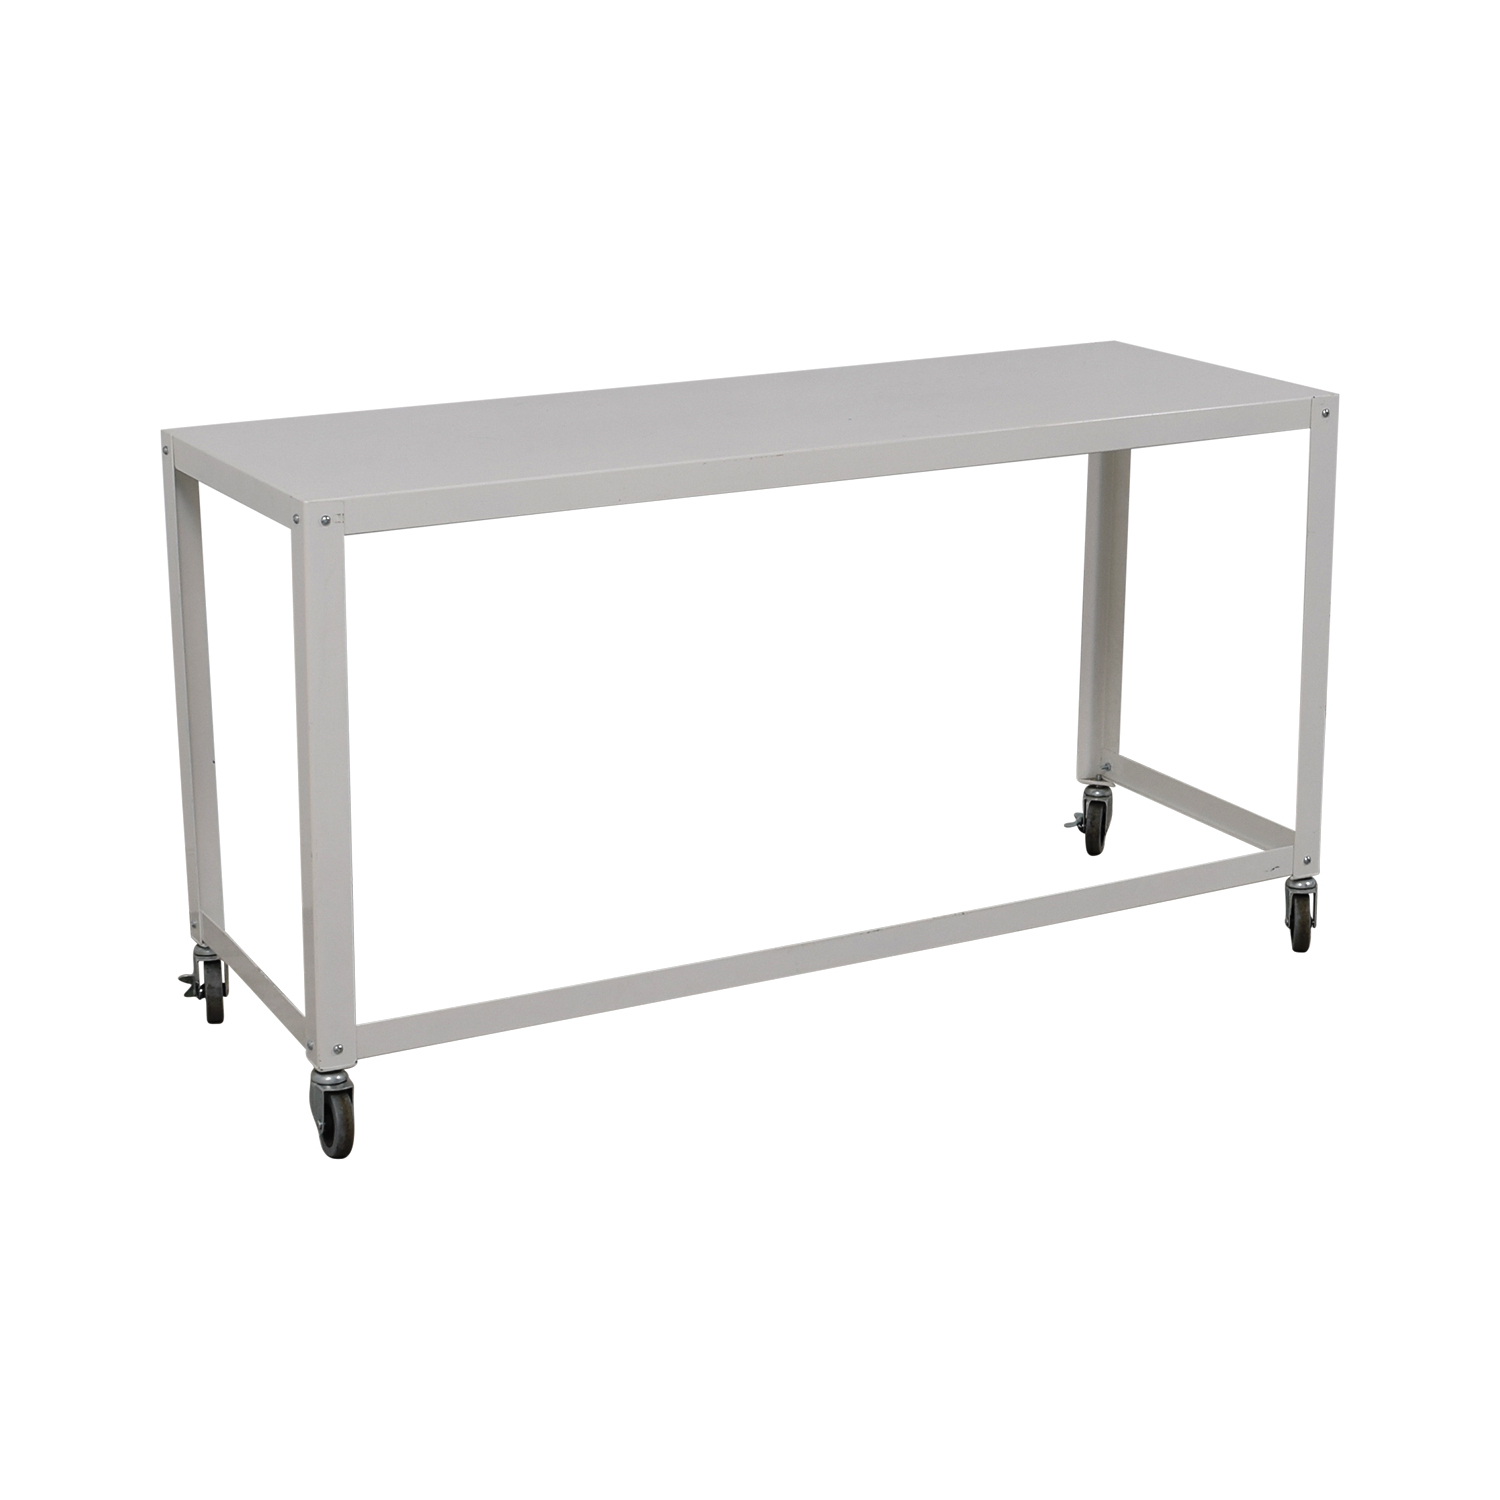 [%81% Off – Cb2 Cb2 Go Cart White Rolling Desk / Tables With Well Known Go Cart White Rolling Coffee Tables|go Cart White Rolling Coffee Tables For Famous 81% Off – Cb2 Cb2 Go Cart White Rolling Desk / Tables|most Recent Go Cart White Rolling Coffee Tables In 81% Off – Cb2 Cb2 Go Cart White Rolling Desk / Tables|best And Newest 81% Off – Cb2 Cb2 Go Cart White Rolling Desk / Tables Inside Go Cart White Rolling Coffee Tables%] (View 6 of 20)